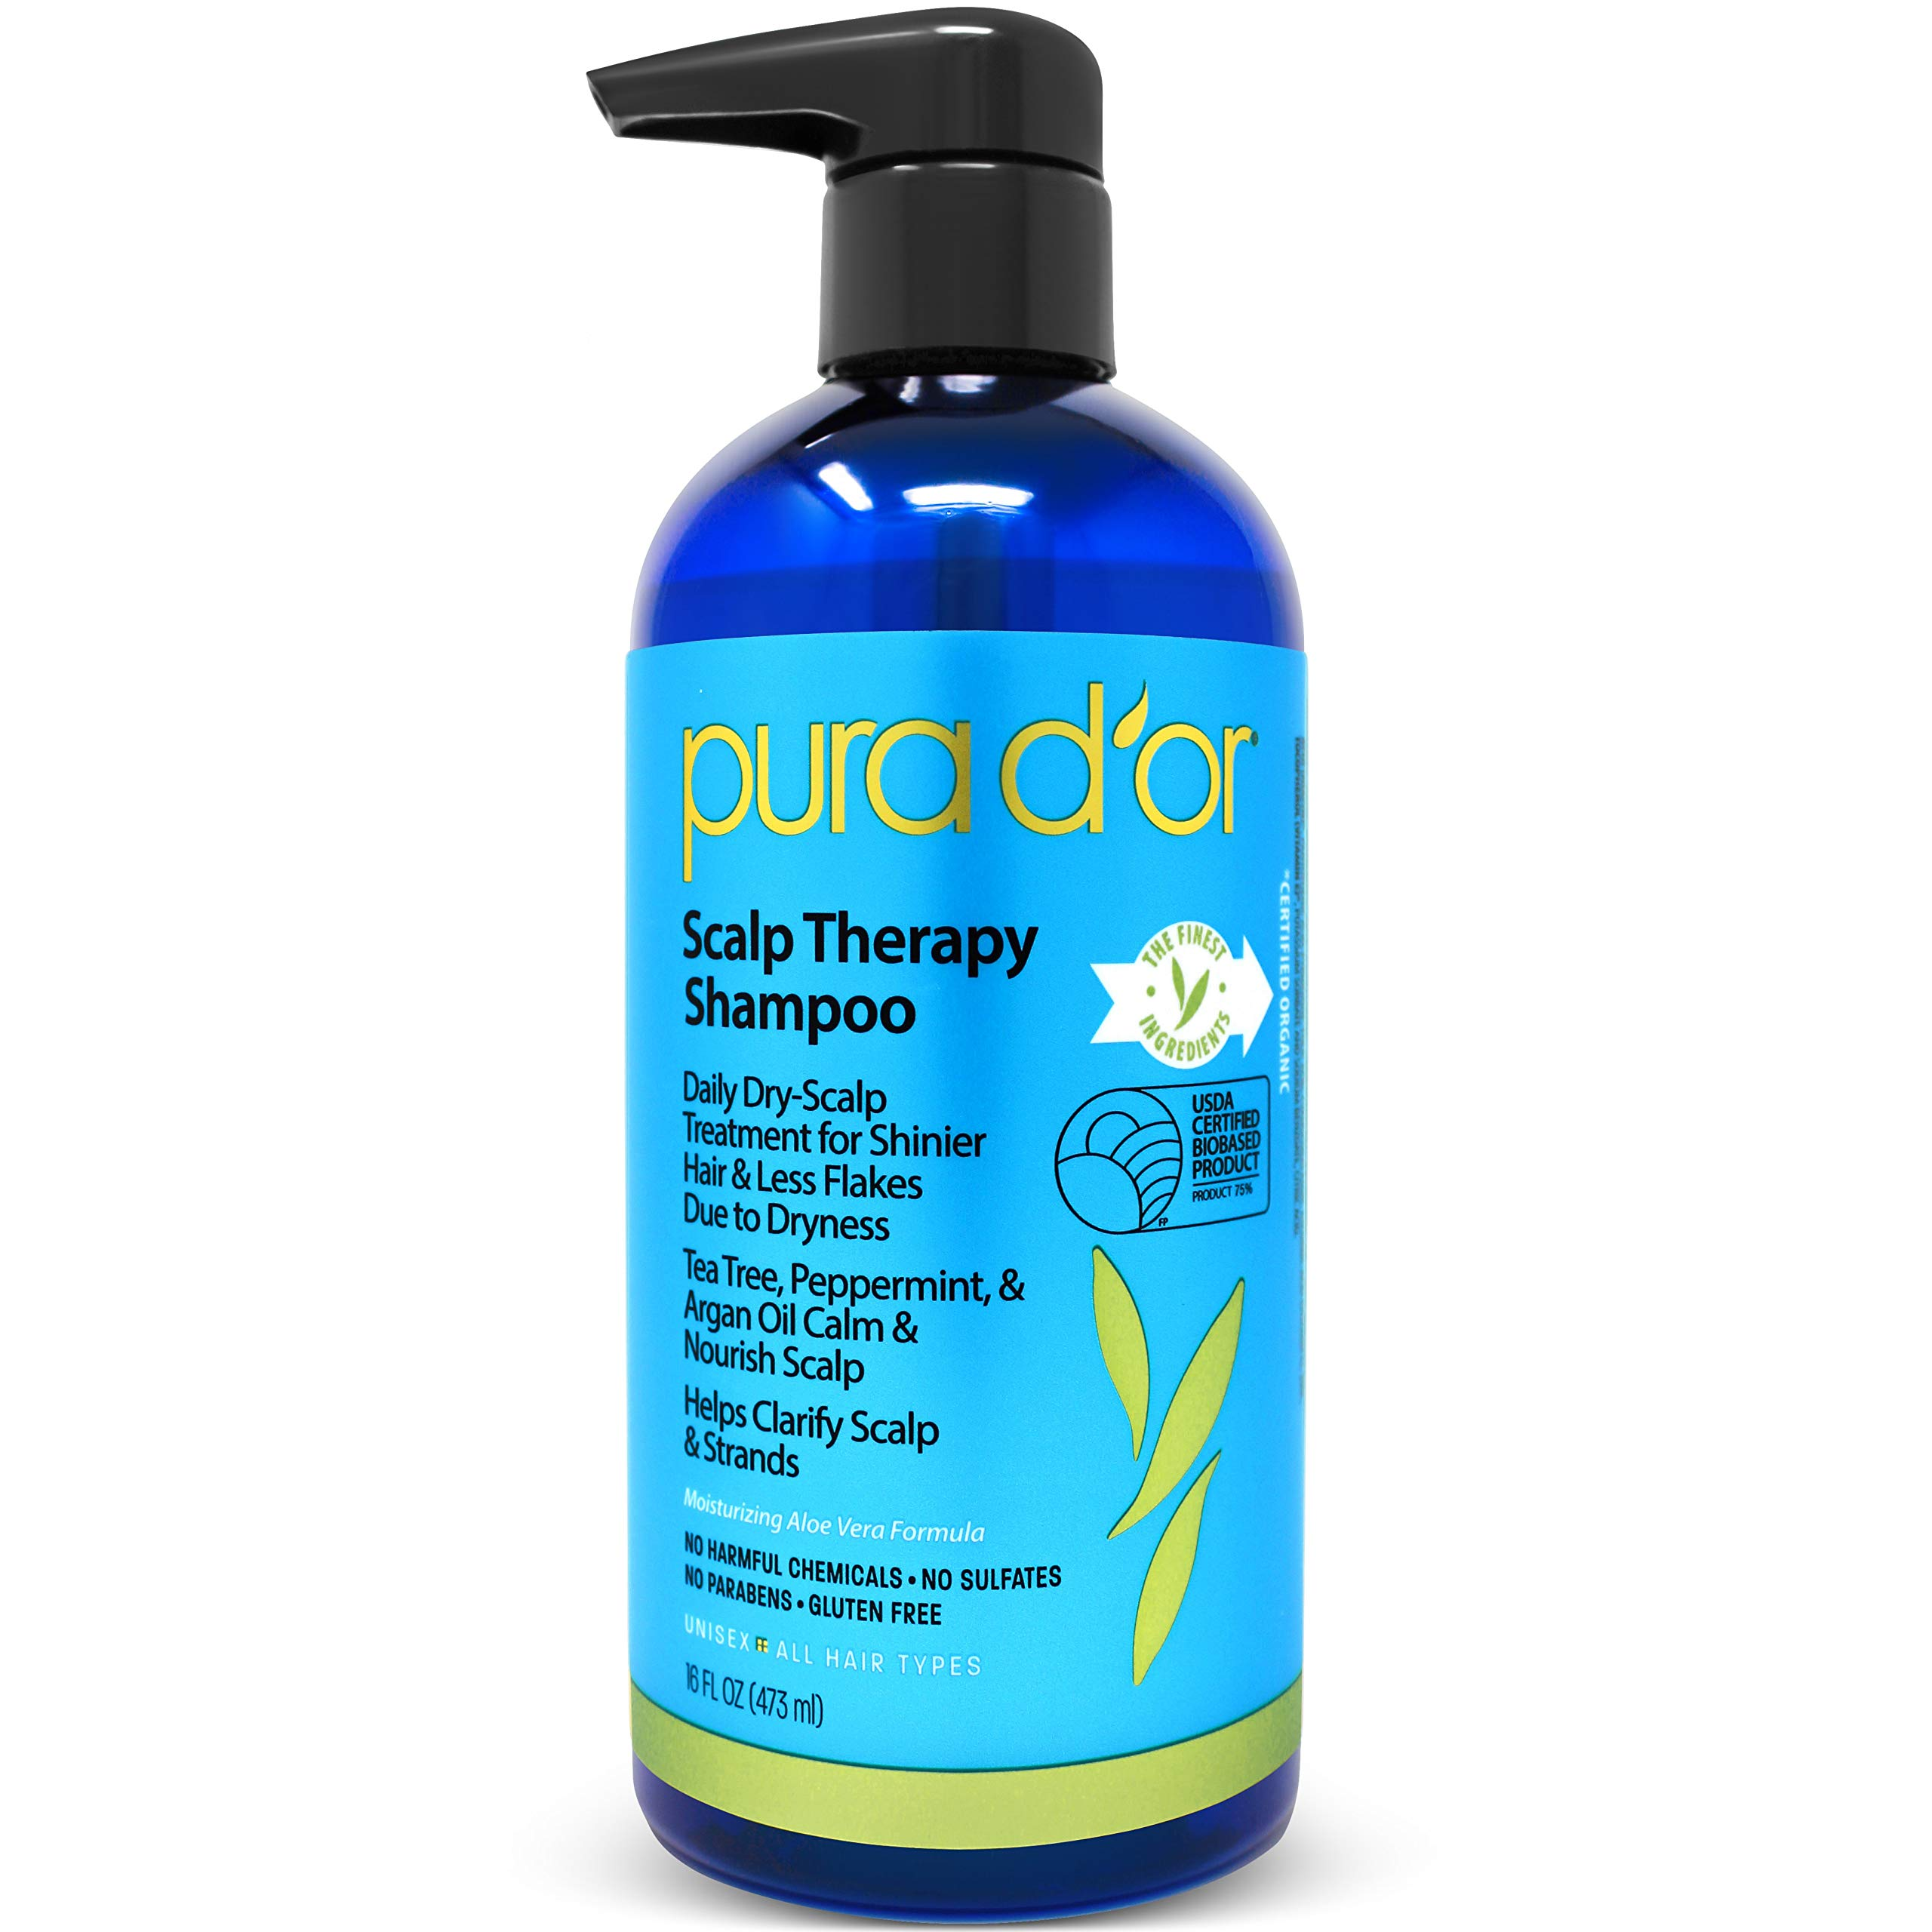 PURA D'OR Scalp Therapy Shampoo - Hydrates & Nourishes Scalp - Scalp Care Shampoo For Itchy Flaky Scalp 16 Fl Oz (Packaging may vary) by PURA D'OR